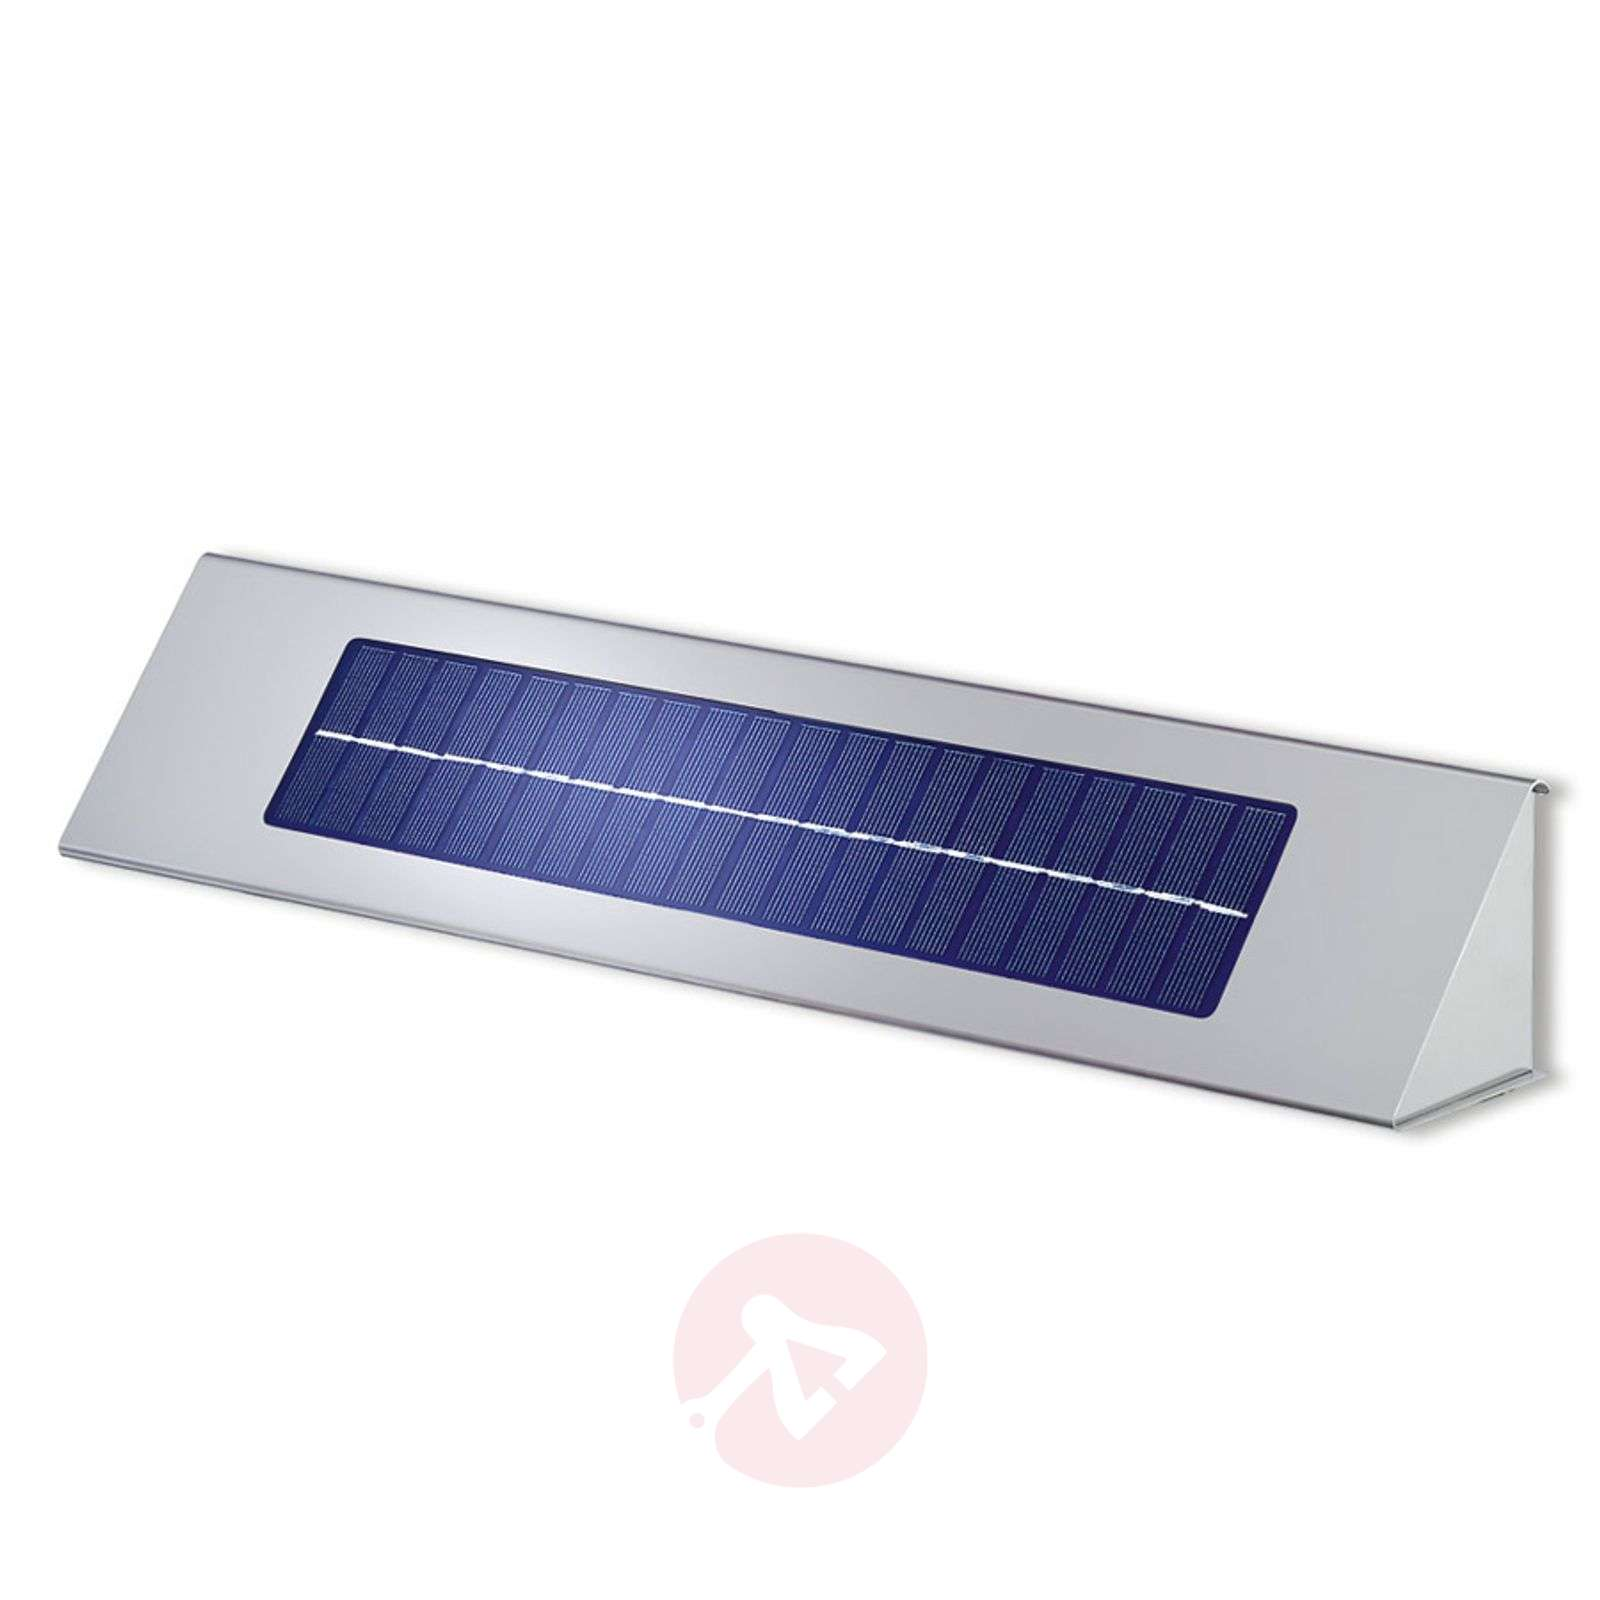 exterior sign lighting led. solar sign lighting profi ii-k with led exterior led s